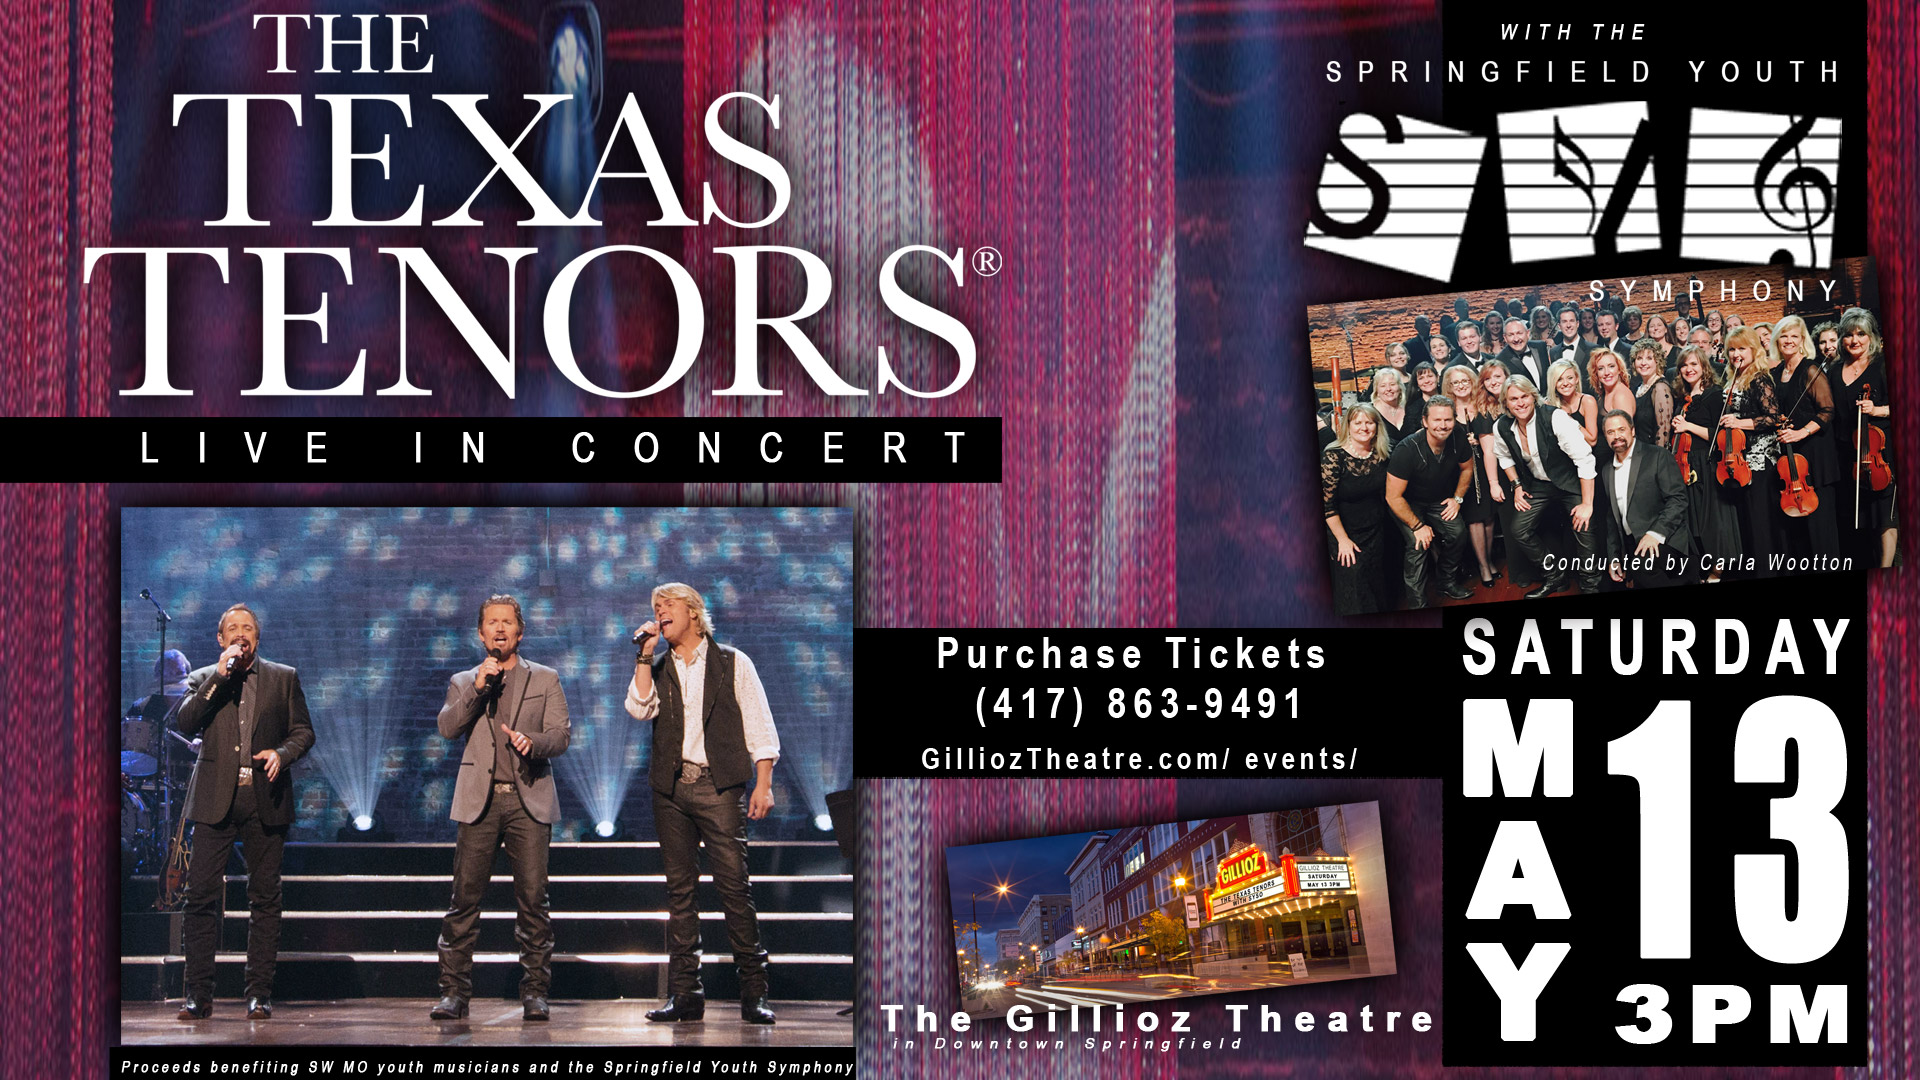 the texas tenors live in concert with the springfield youth symphony